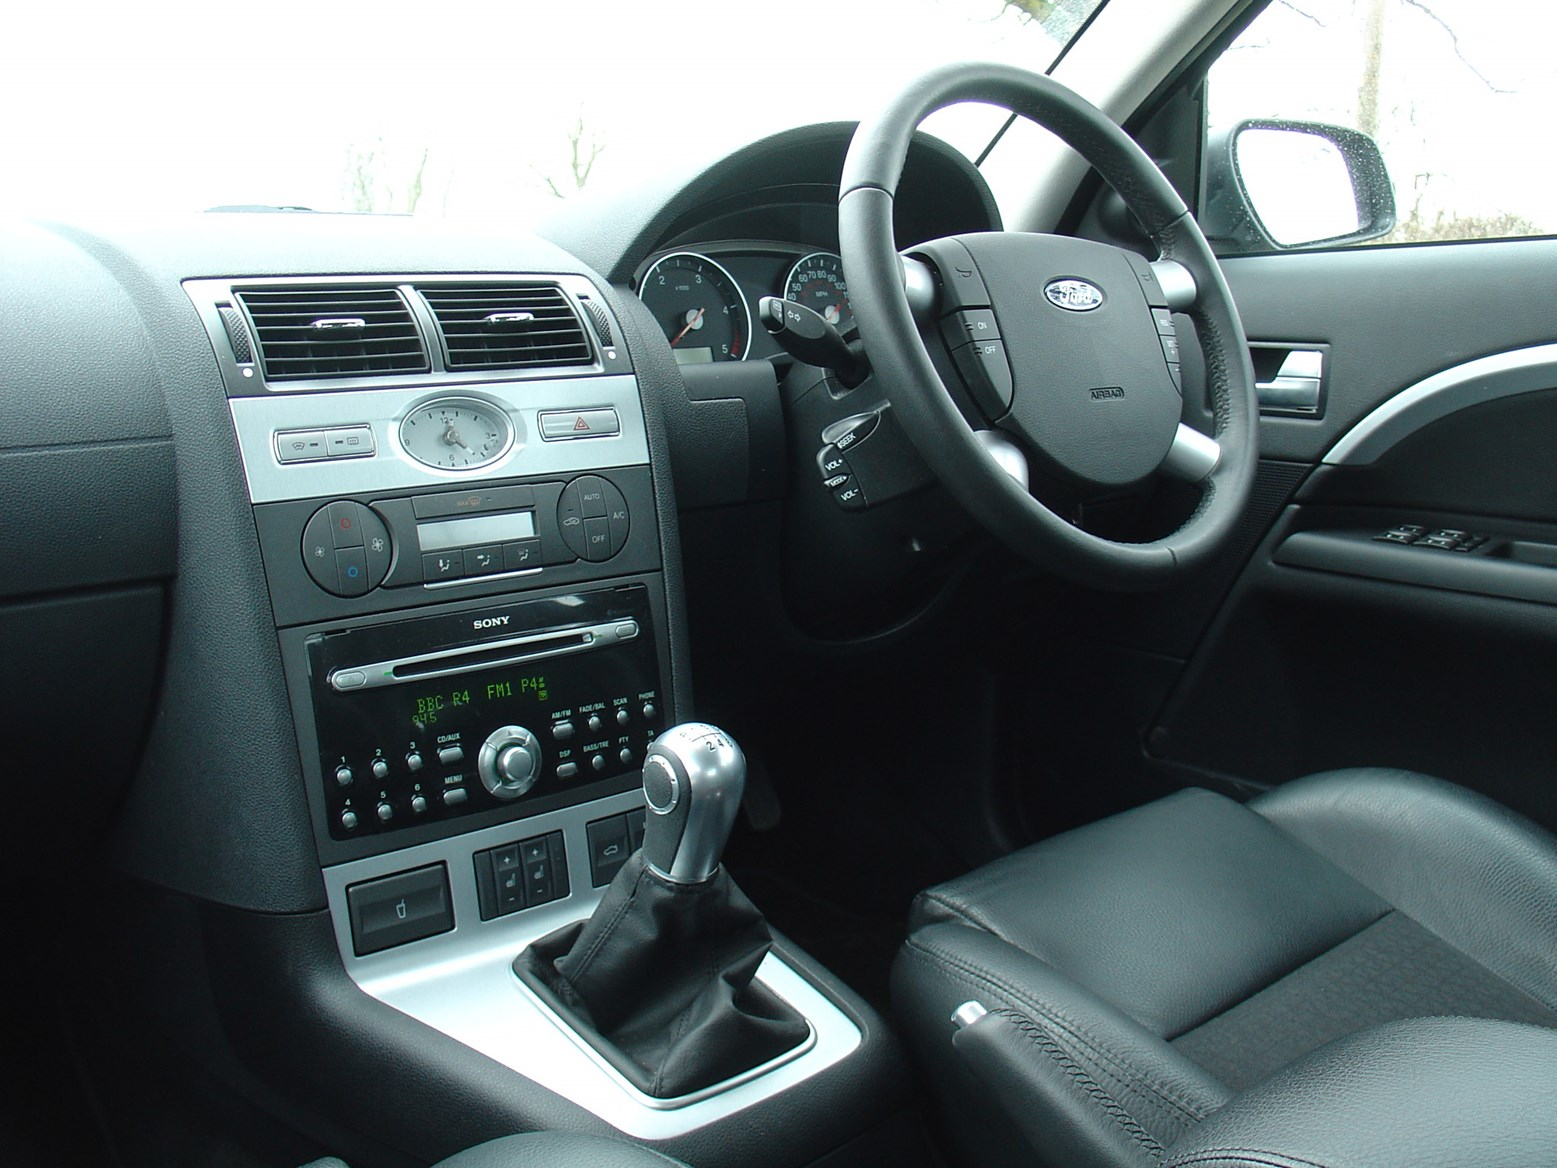 Ford mondeo hatchback 2000 2007 photos parkers - Ford mondeo interior ...